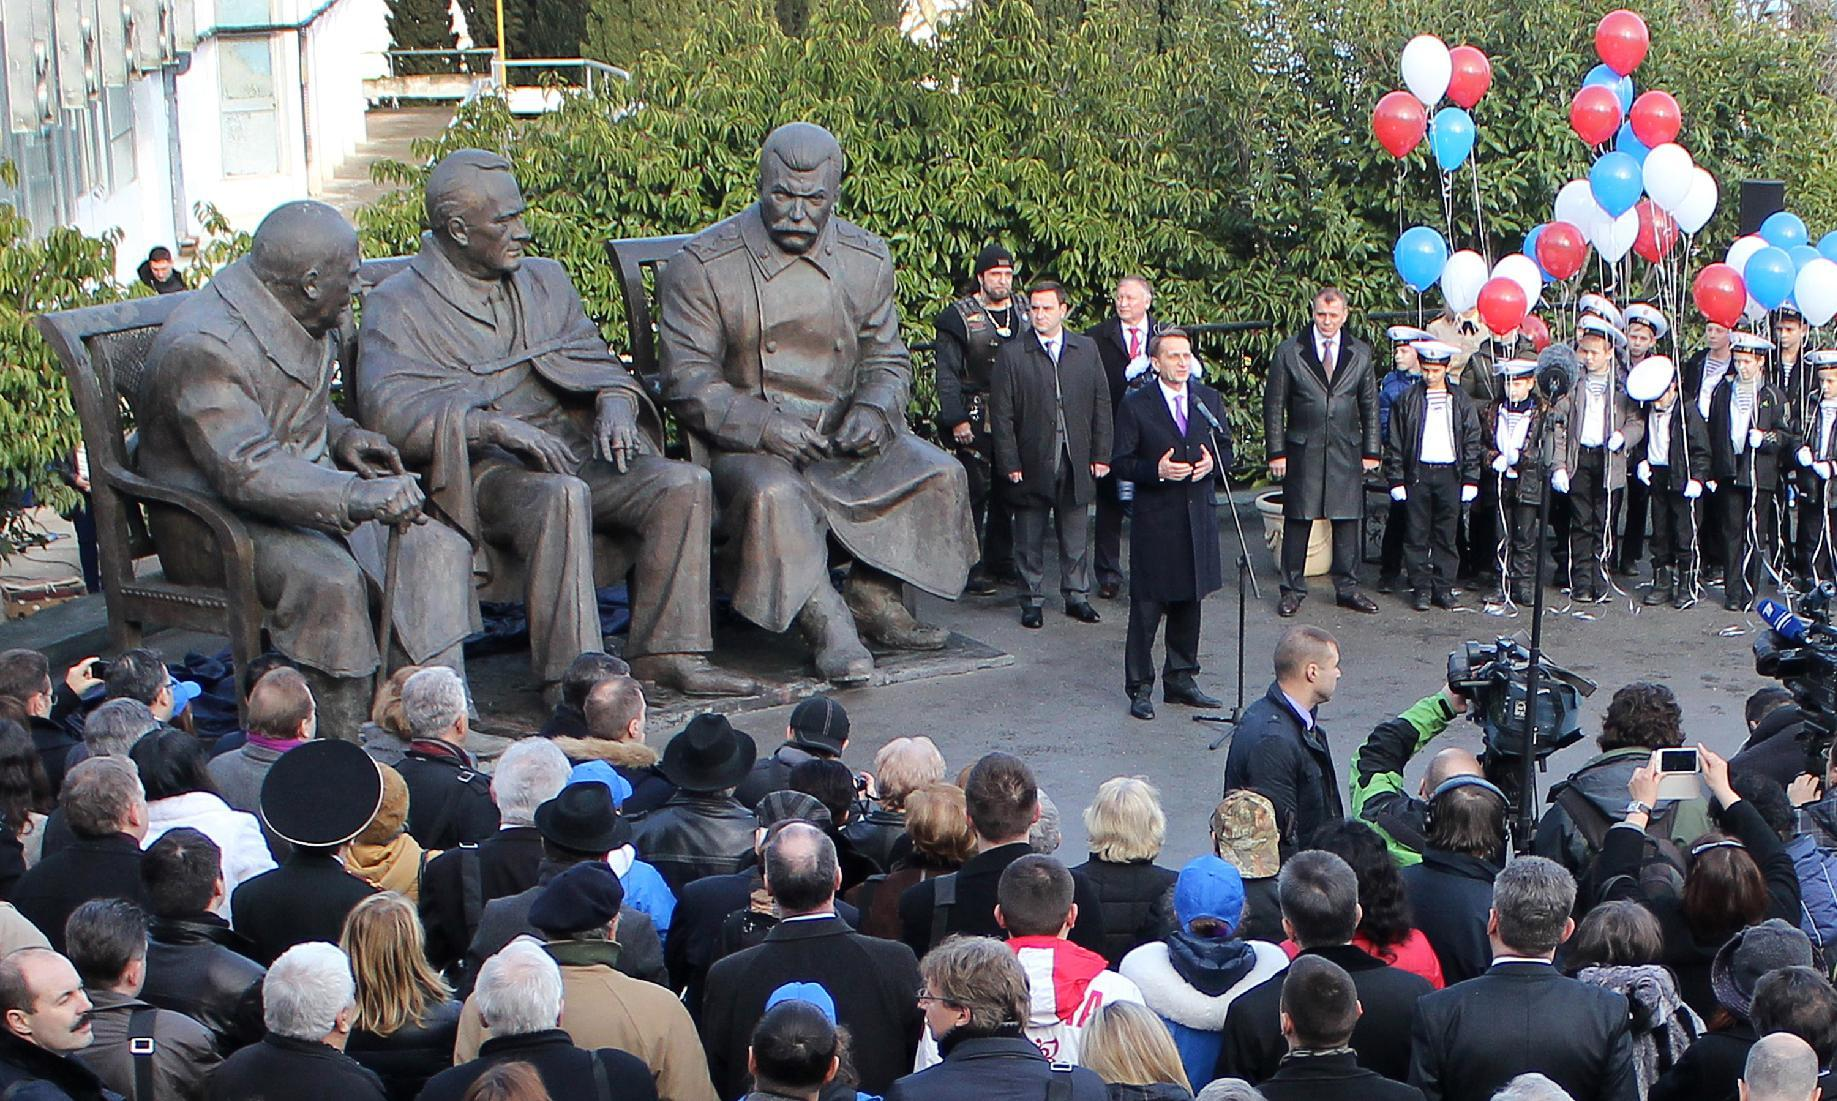 Russia's speaker of parliament's lower house, Sergei Naryshkin (C), attends the opening ceremony for a monument outside Yalta, in Crimea on February 5, 2015 (AFP Photo/Yuri Lashov)